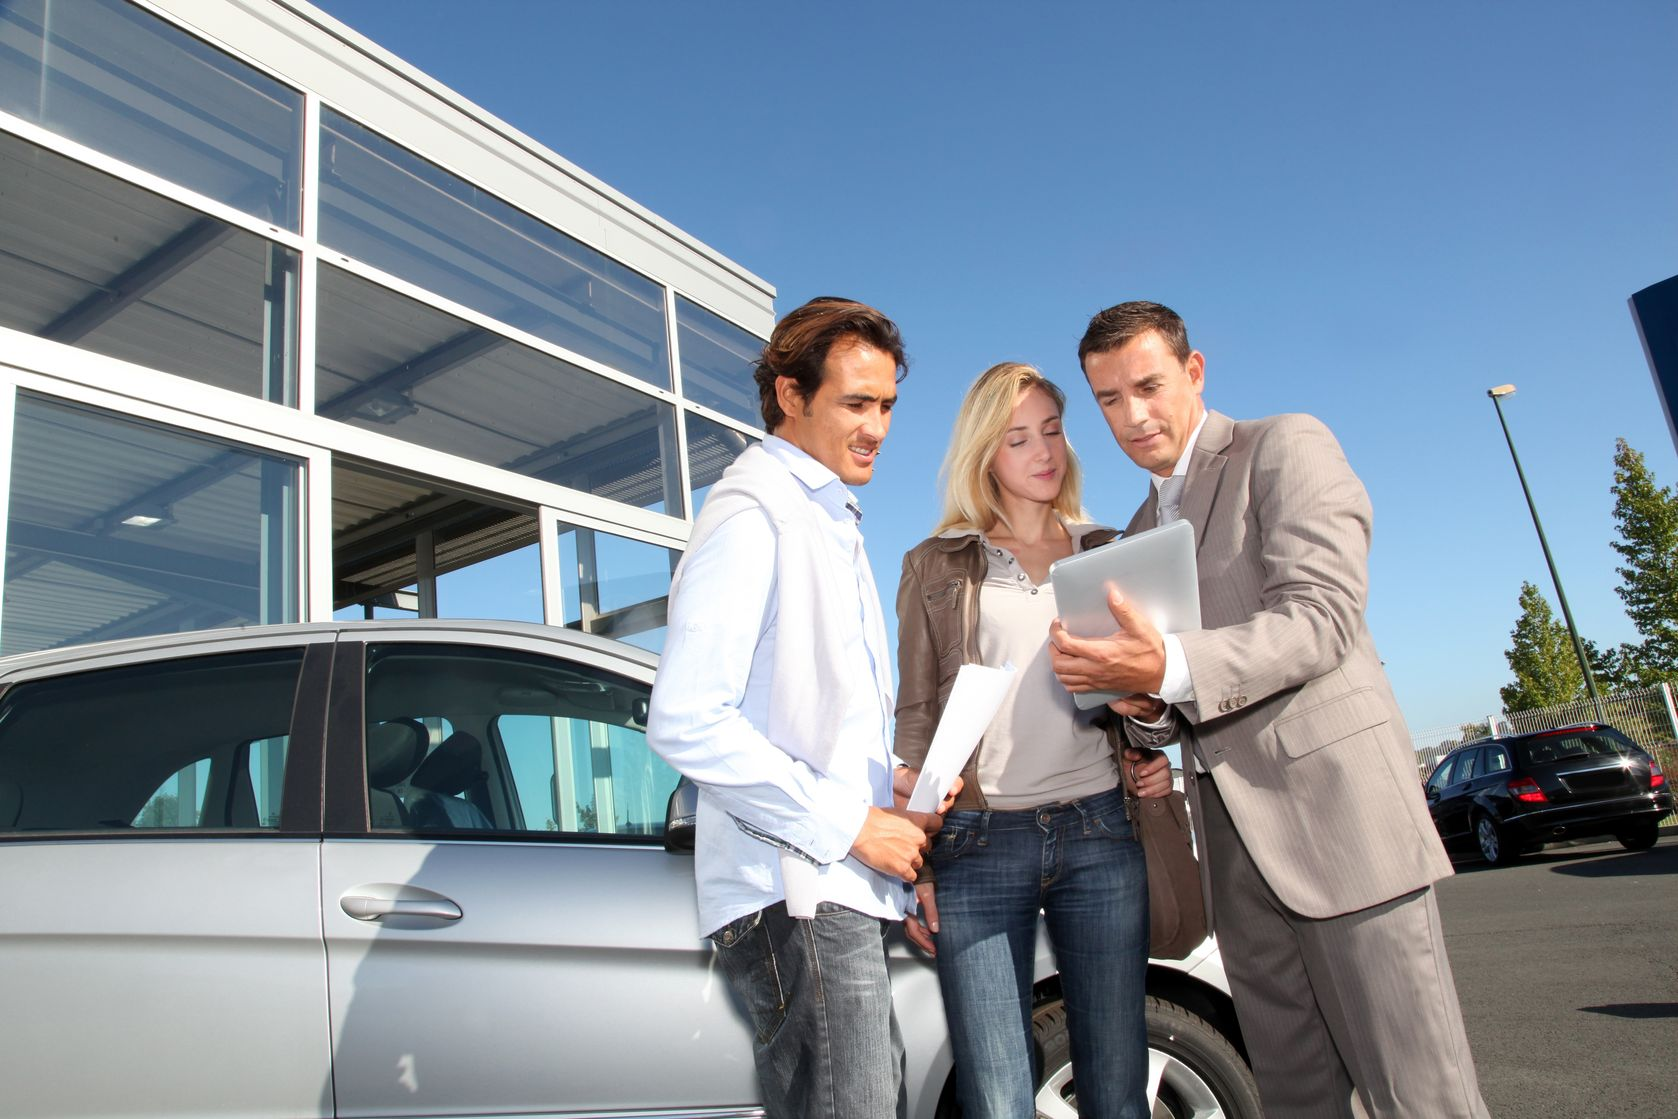 St. George Auto Dealers Insurance